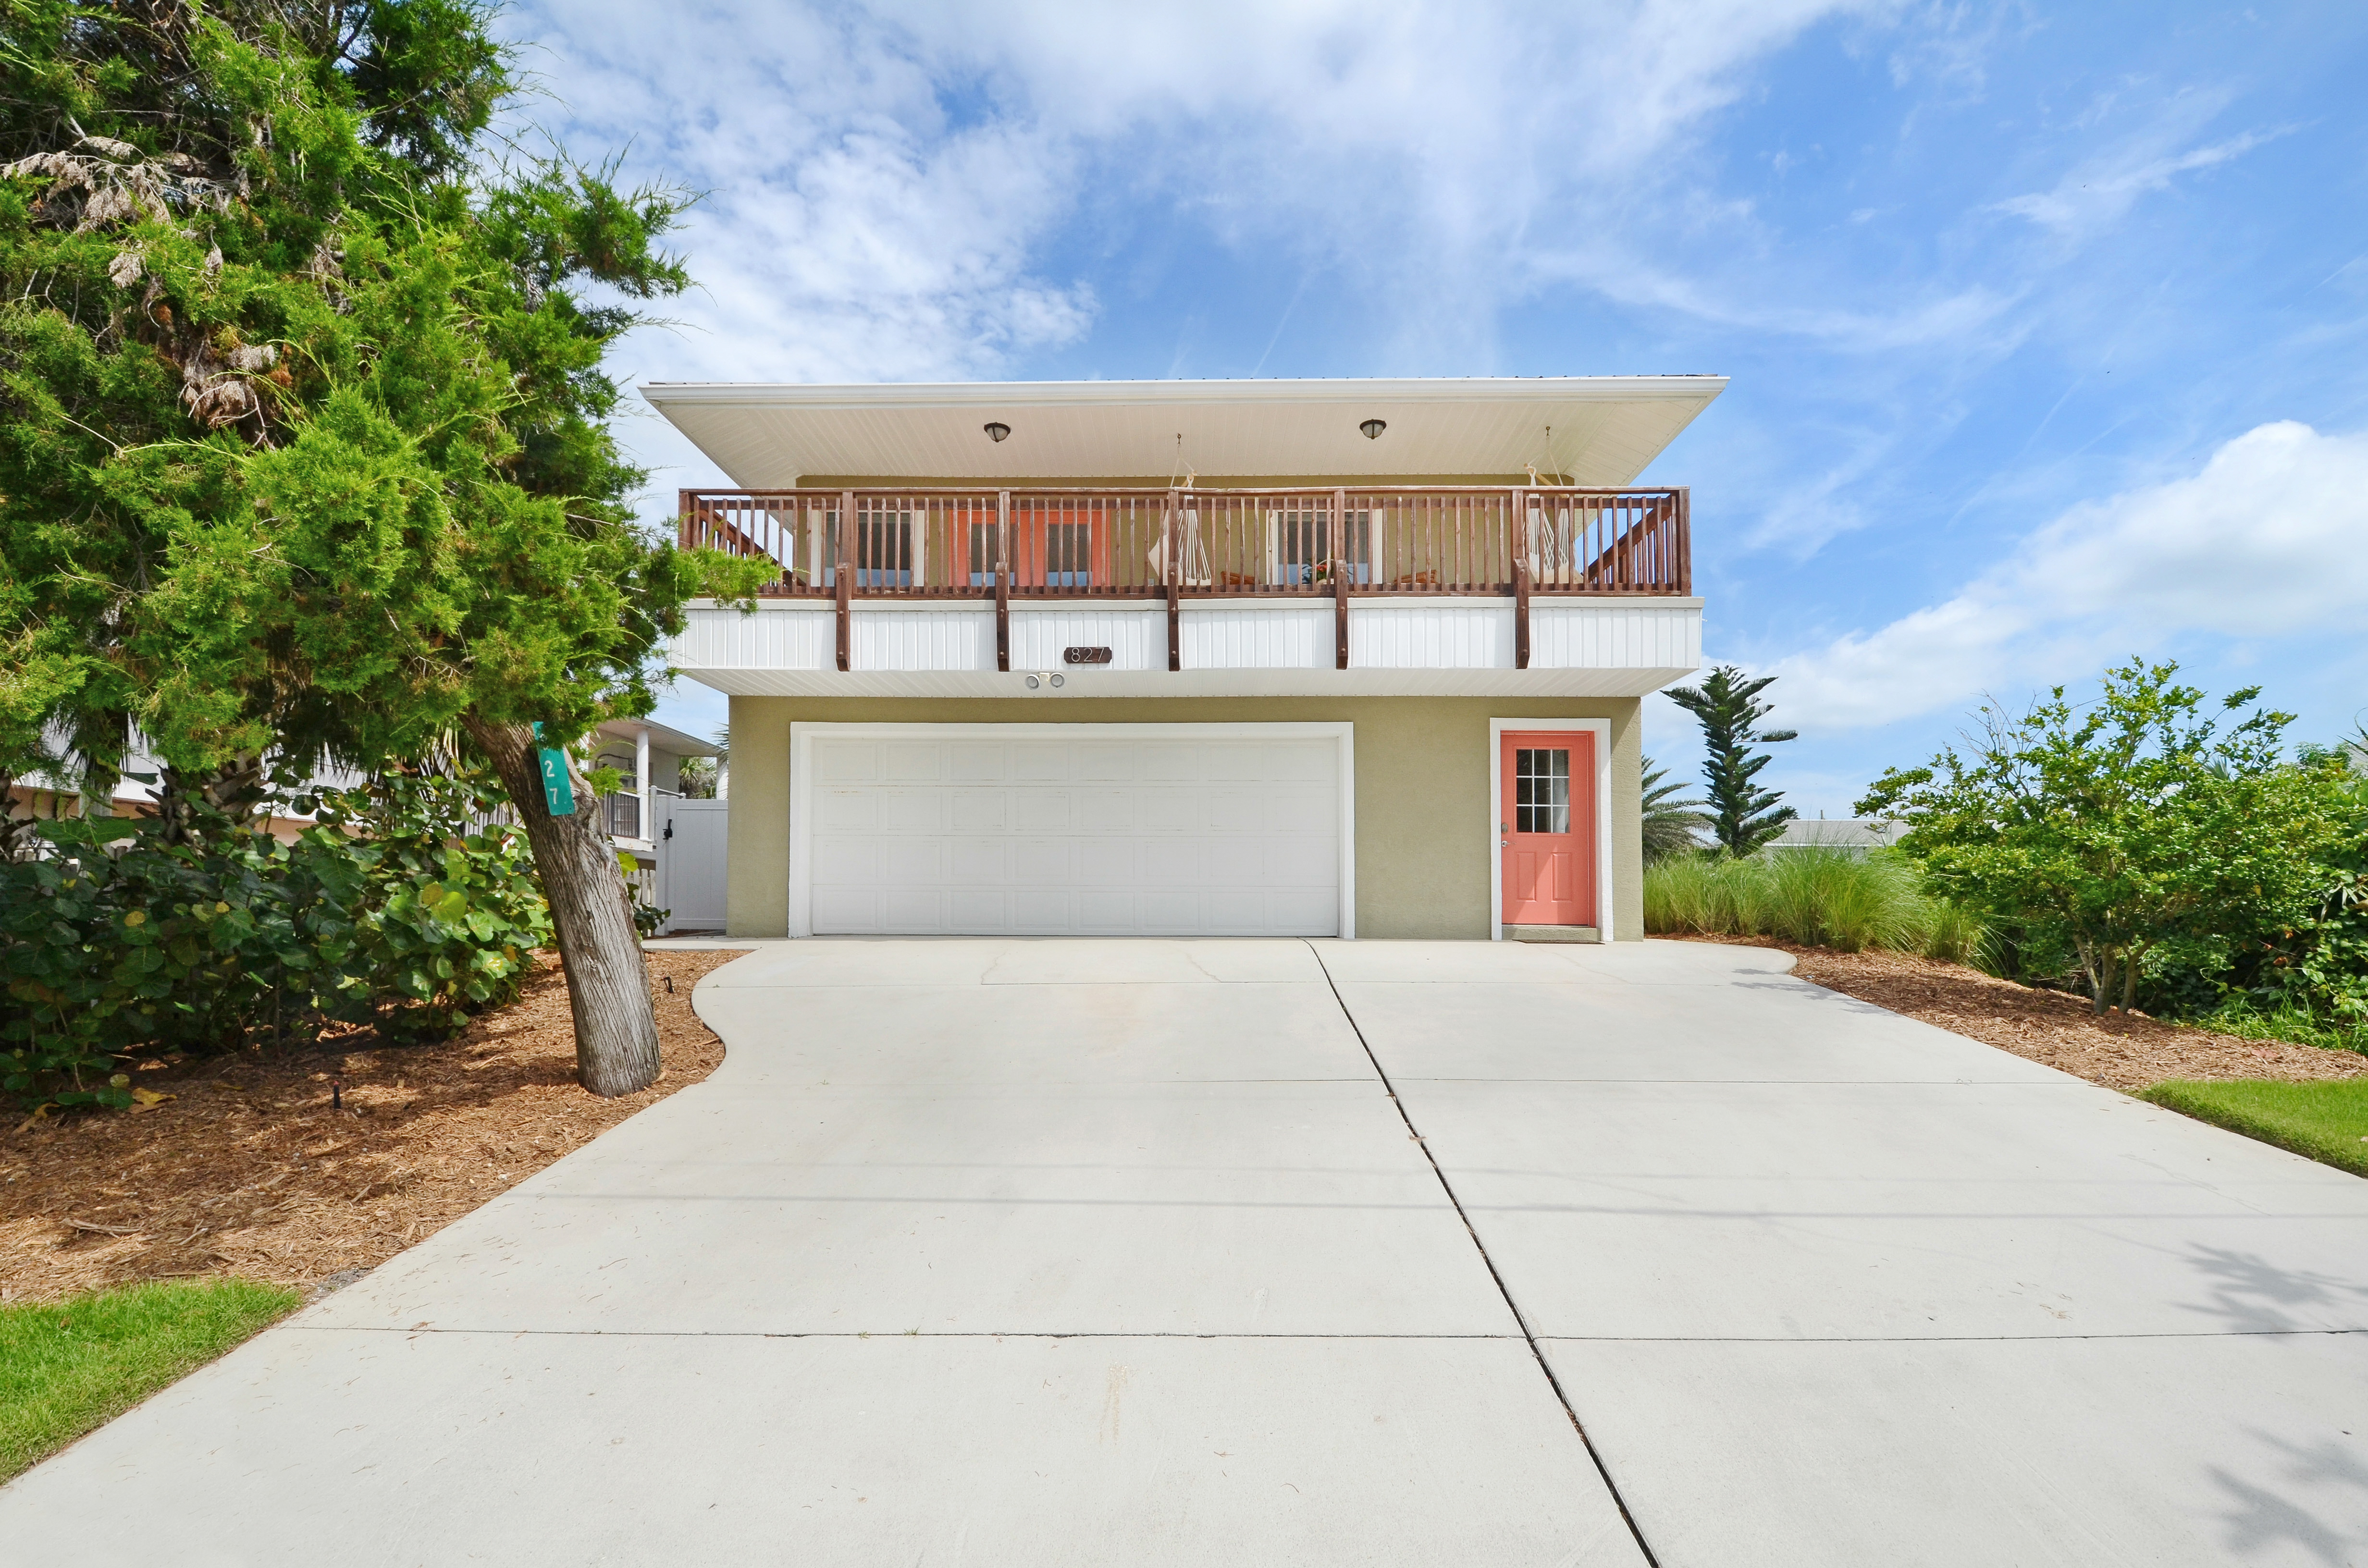 New Smyrna Beach pool home steps from the beach and river